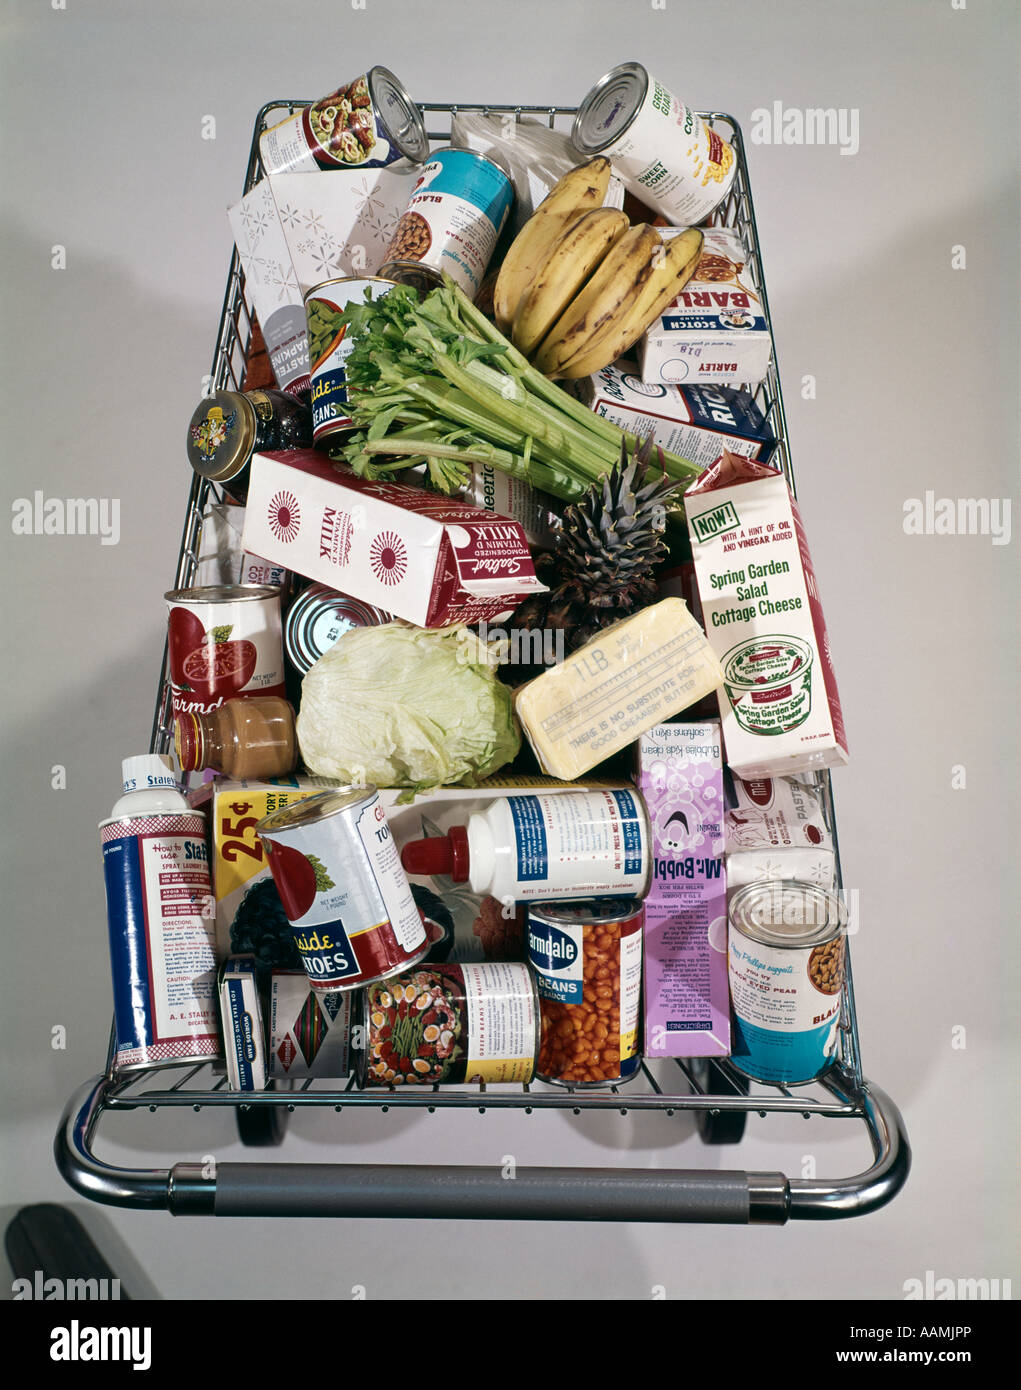 1960s TOP VIEW OF FULL SUPER MARKET FOOD GROCERY SHOPPING CART PACKED - Stock Image